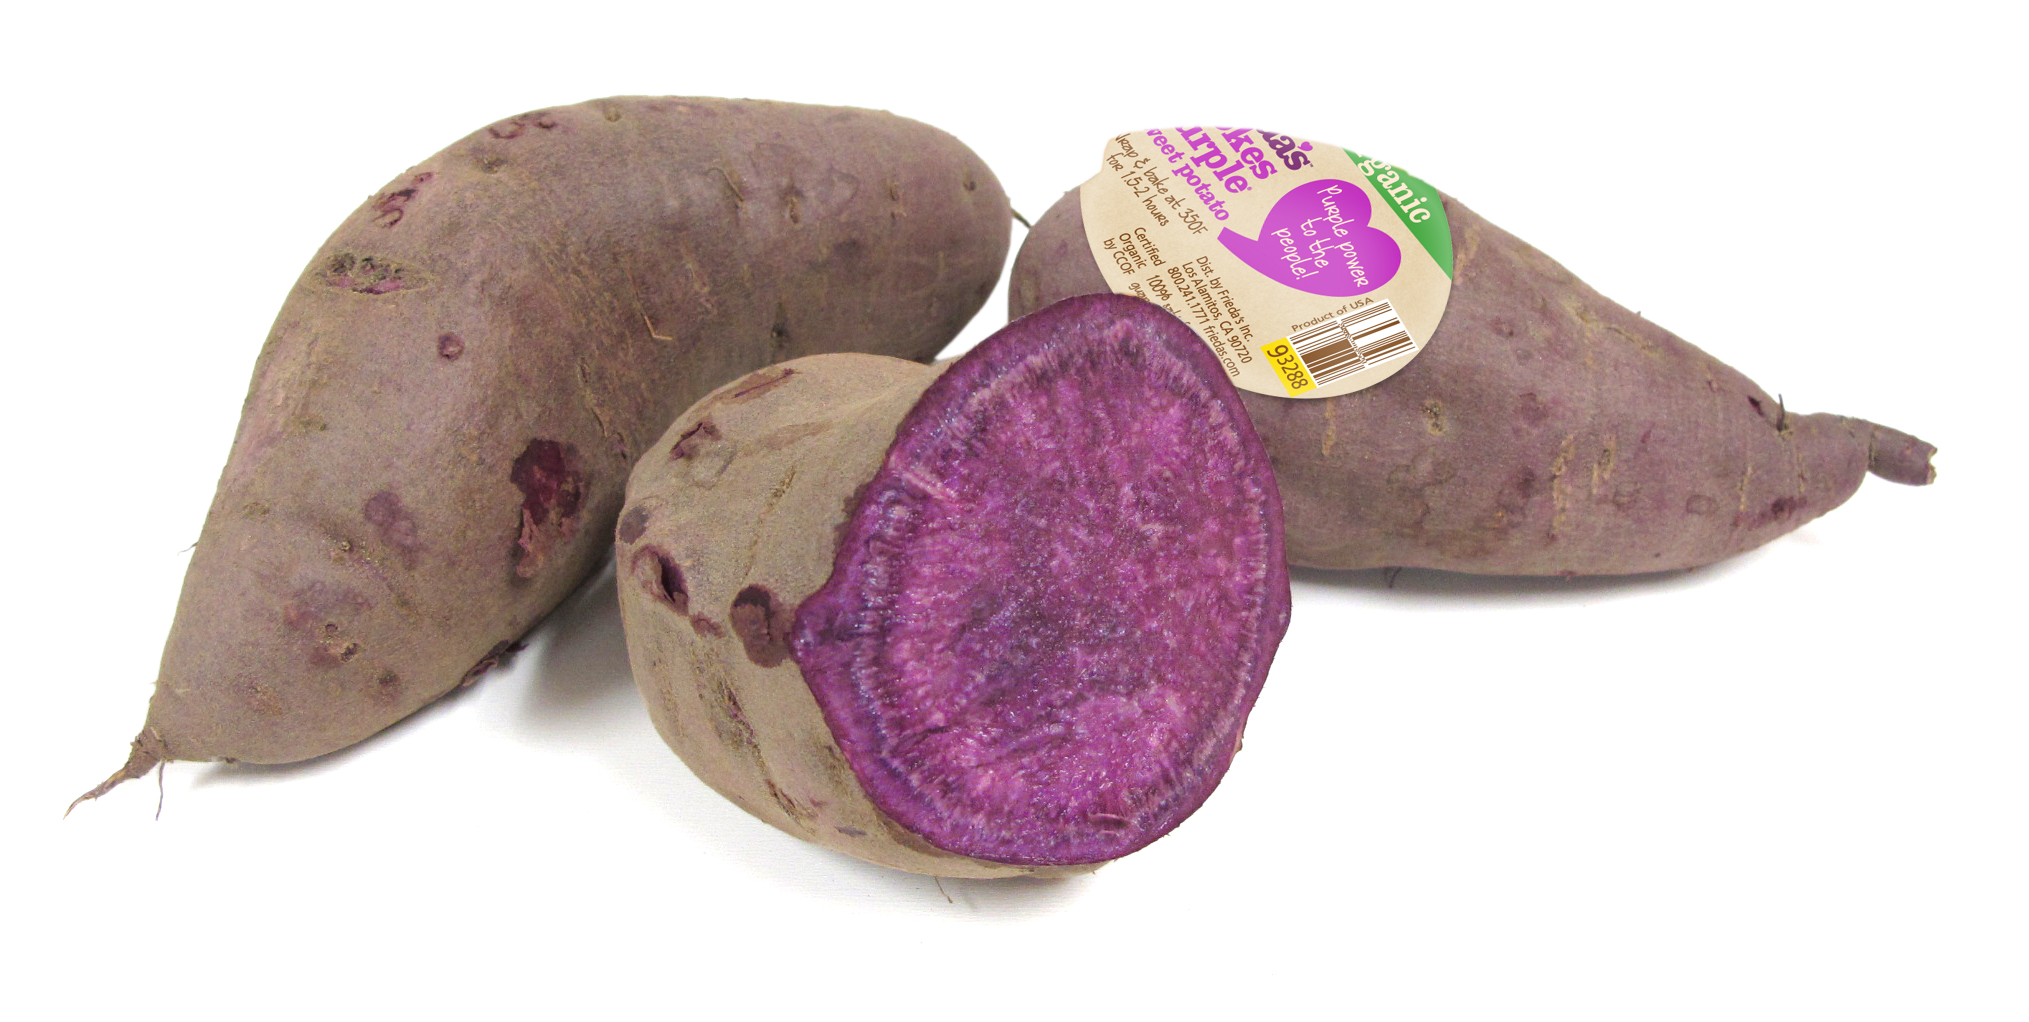 casestudy demand of sweet potatoes in the united states The estimated demands function for sweet potatoes in the united states for the  period of 1949 to 1972 qd_s 7609-1606p_s 59n 947i.